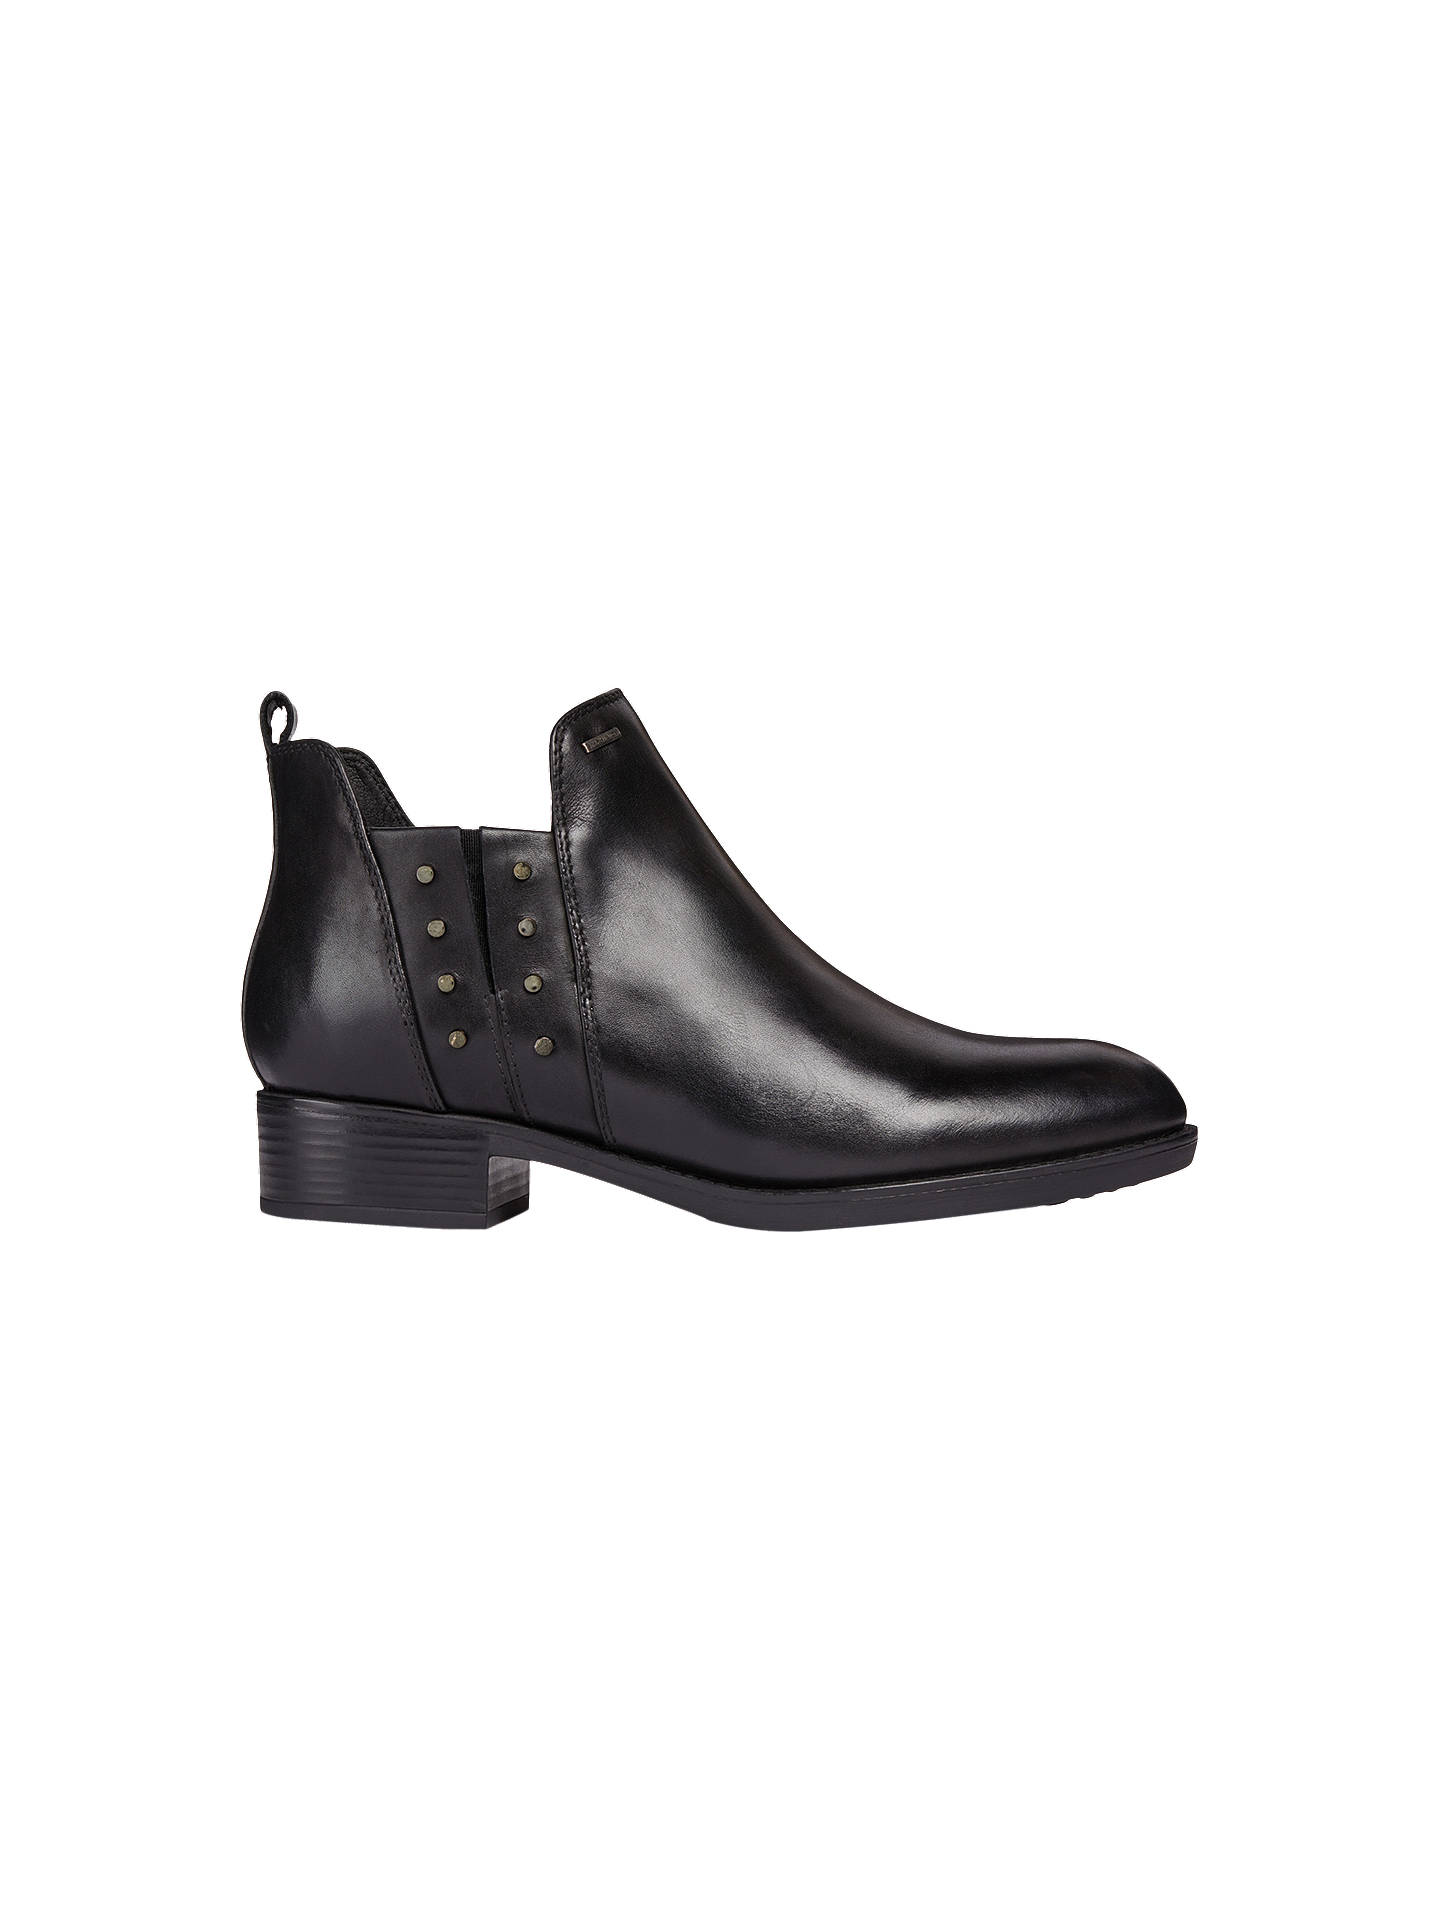 53db568243 Buy Geox Felicity D Studded Ankle Boots, Black Leather, 3 Online at  johnlewis.